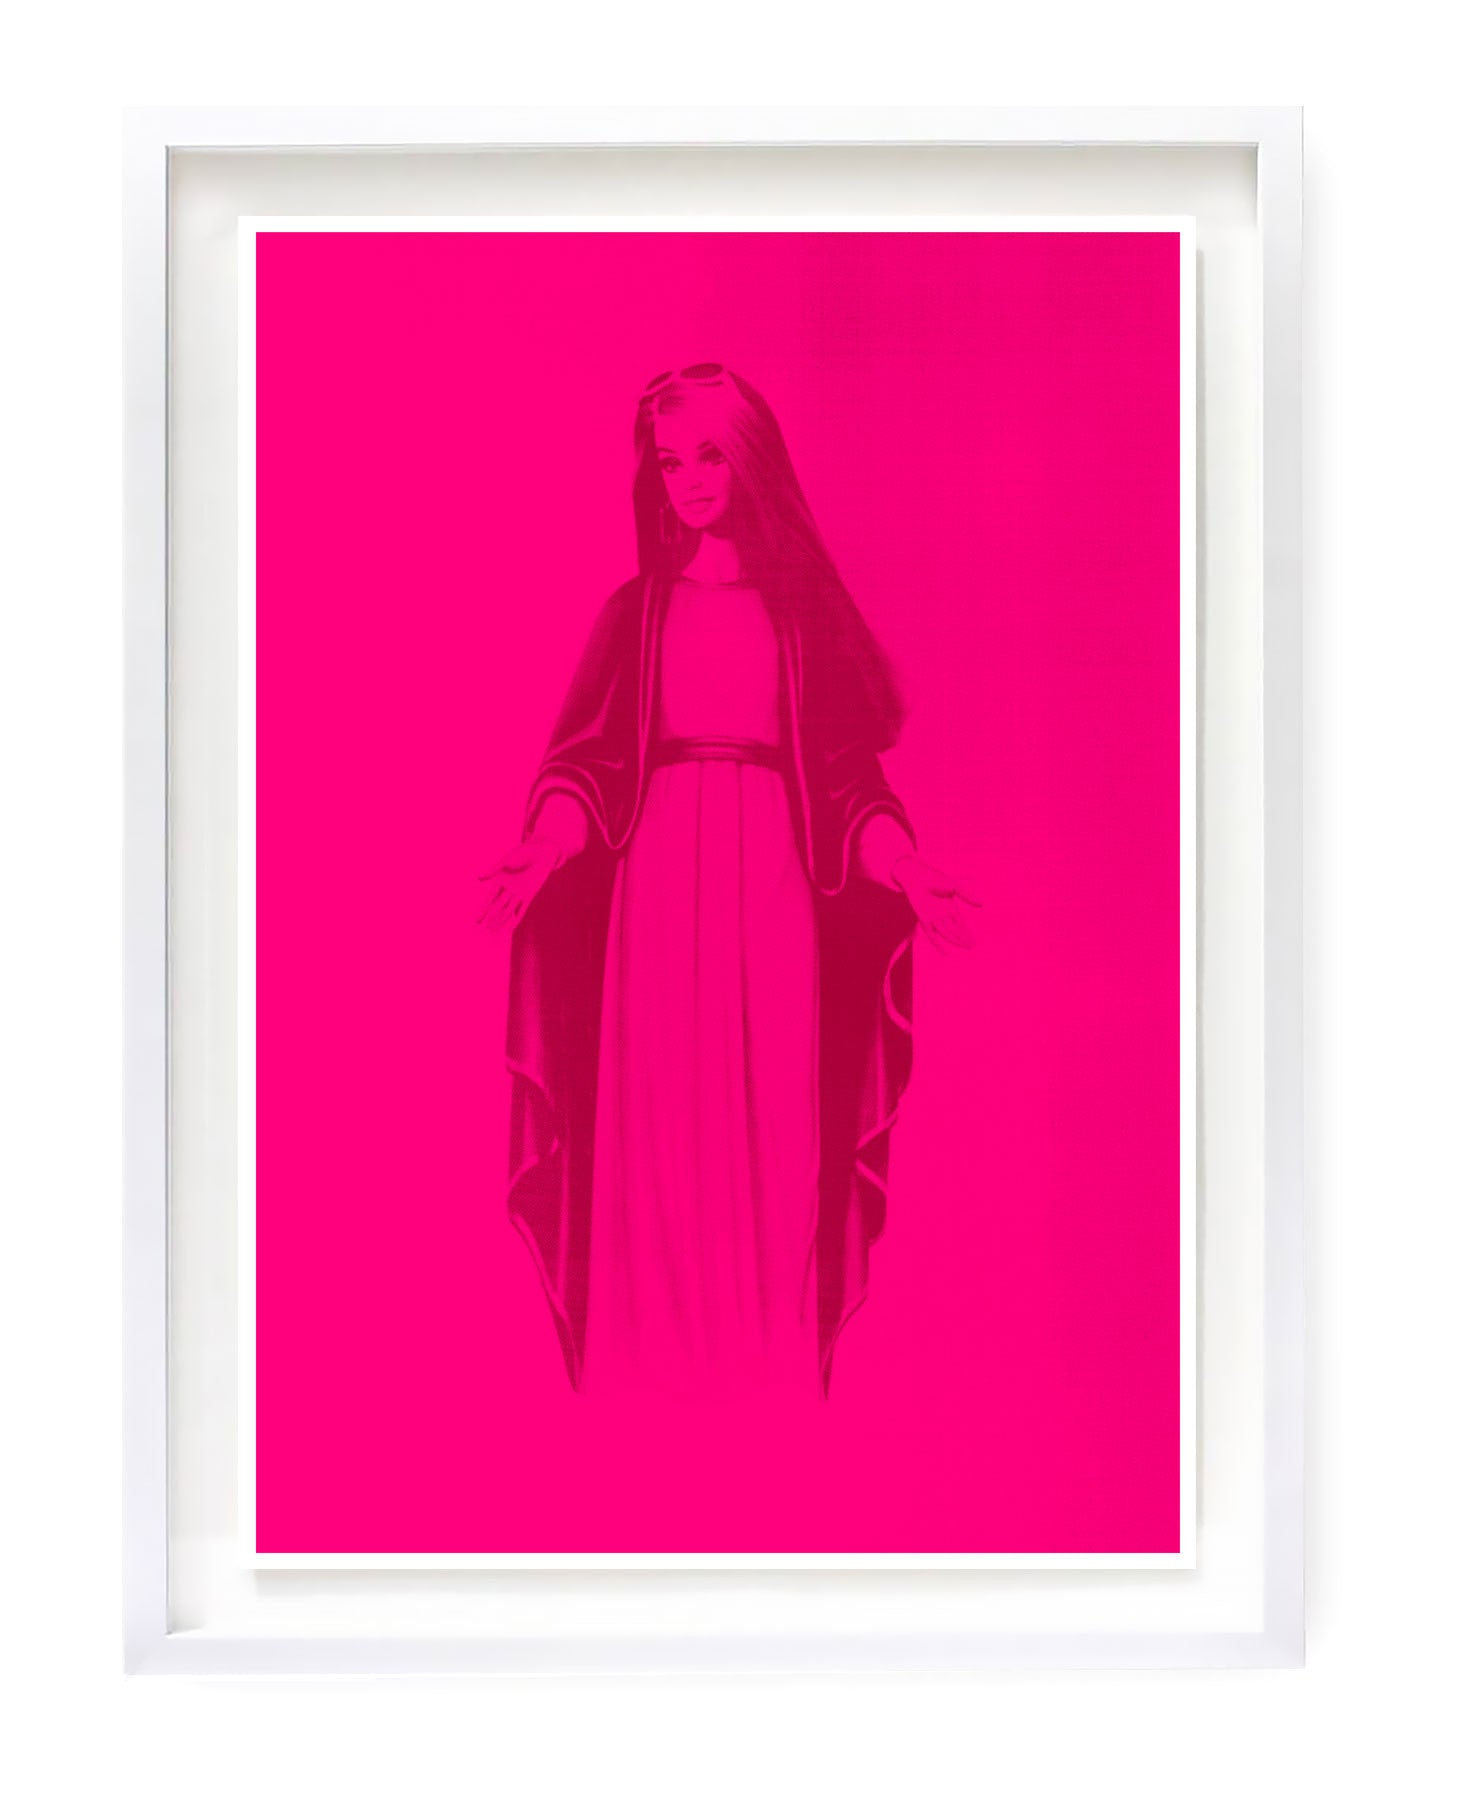 In Brands we Trust, Barbie silkscreen by Heath Kane